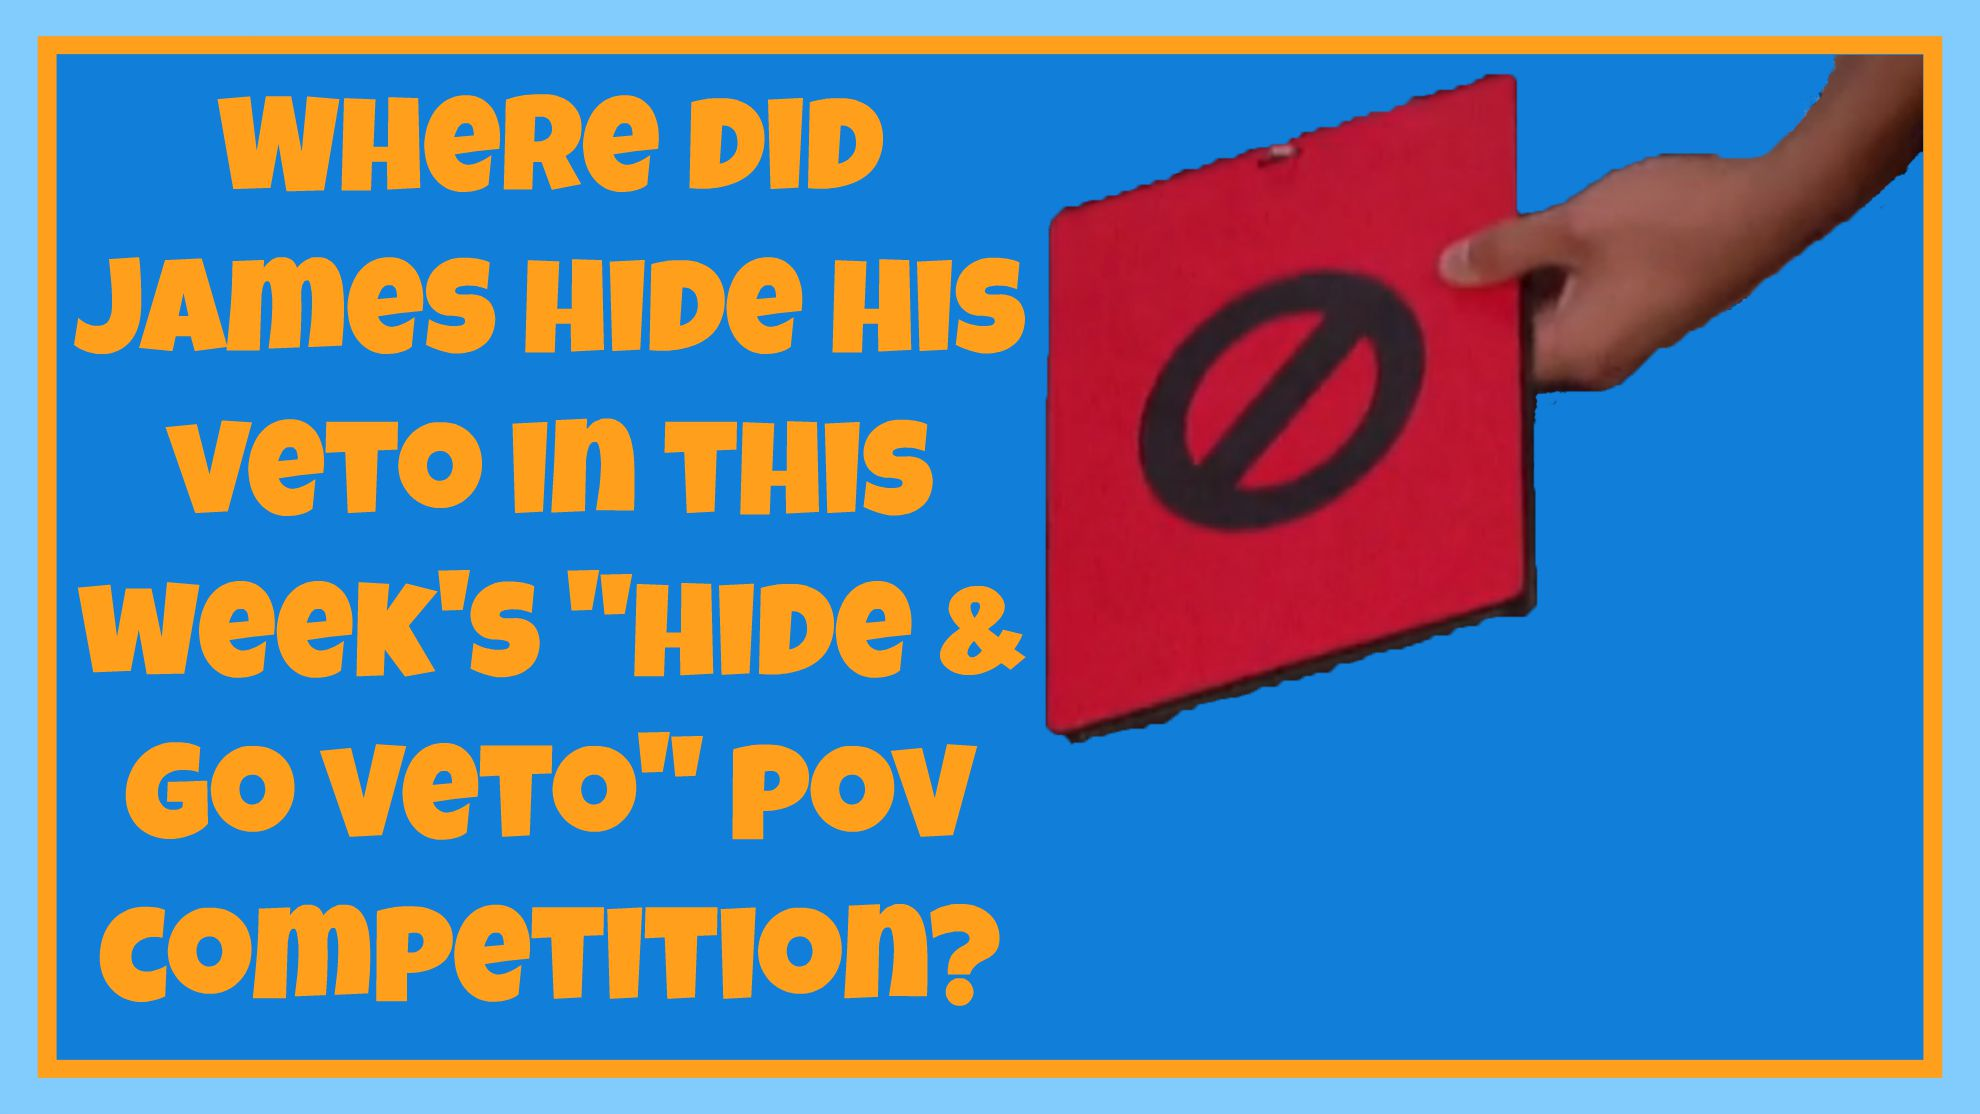 Where did James hide his Veto in this week's